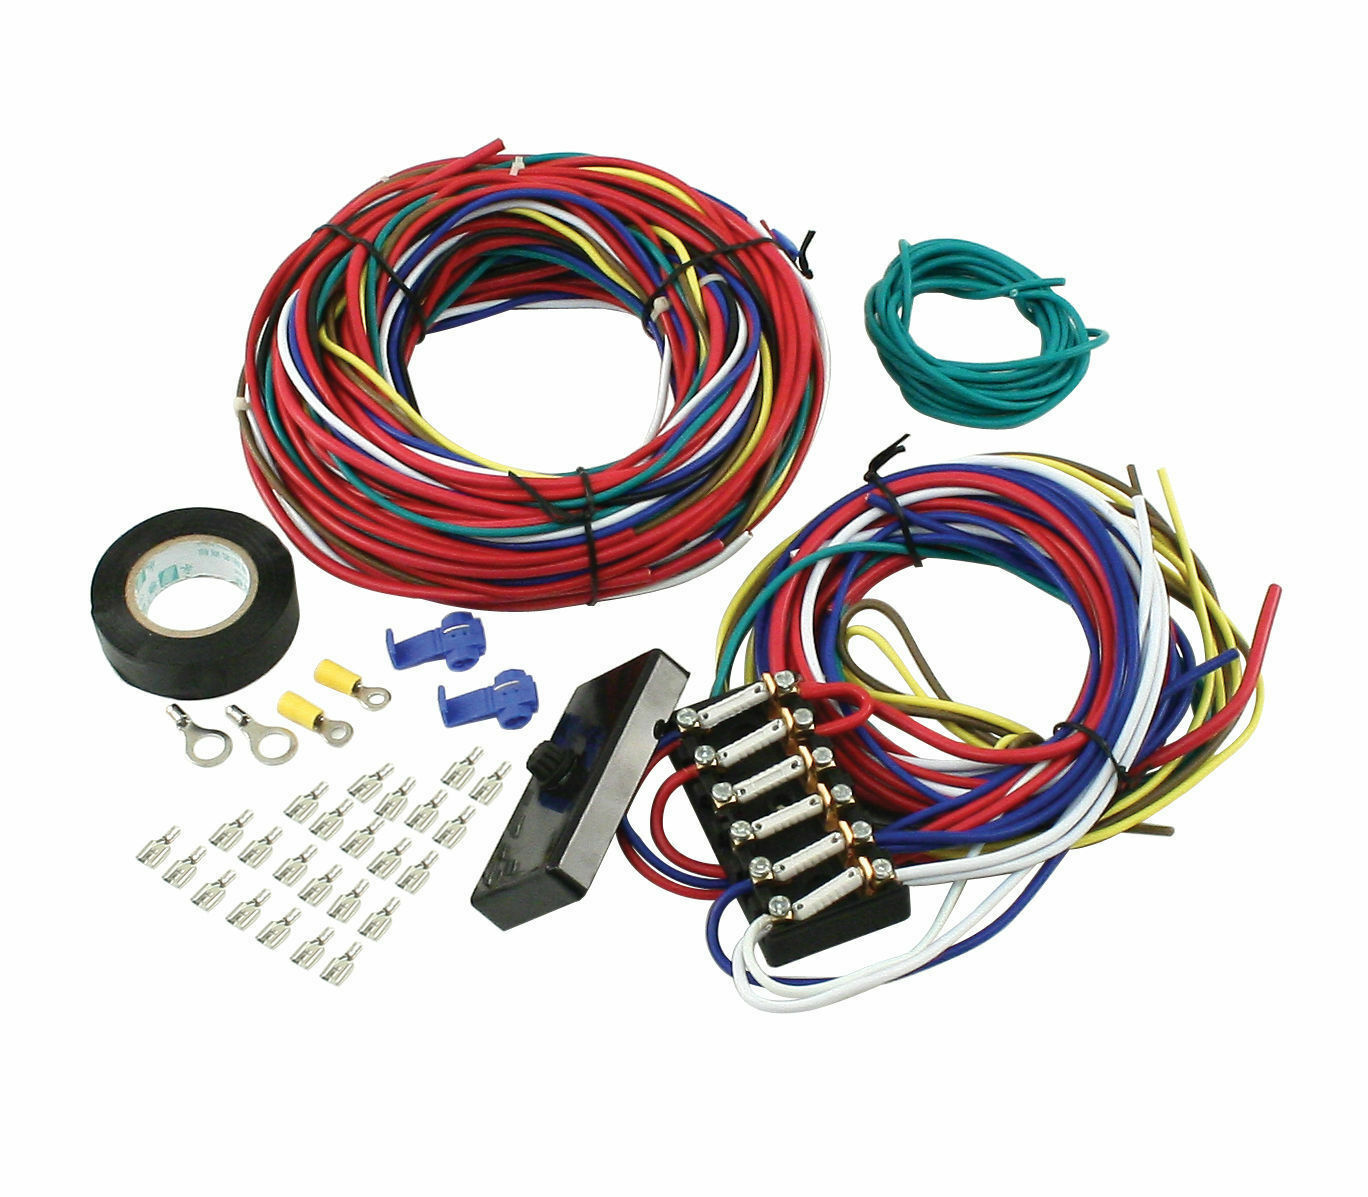 Sand Car Wiring Starting Know About Diagram Universal Painless Fuse Box Dune Buggy Harness Rail Vw Trike Kit Rh Picclick Com